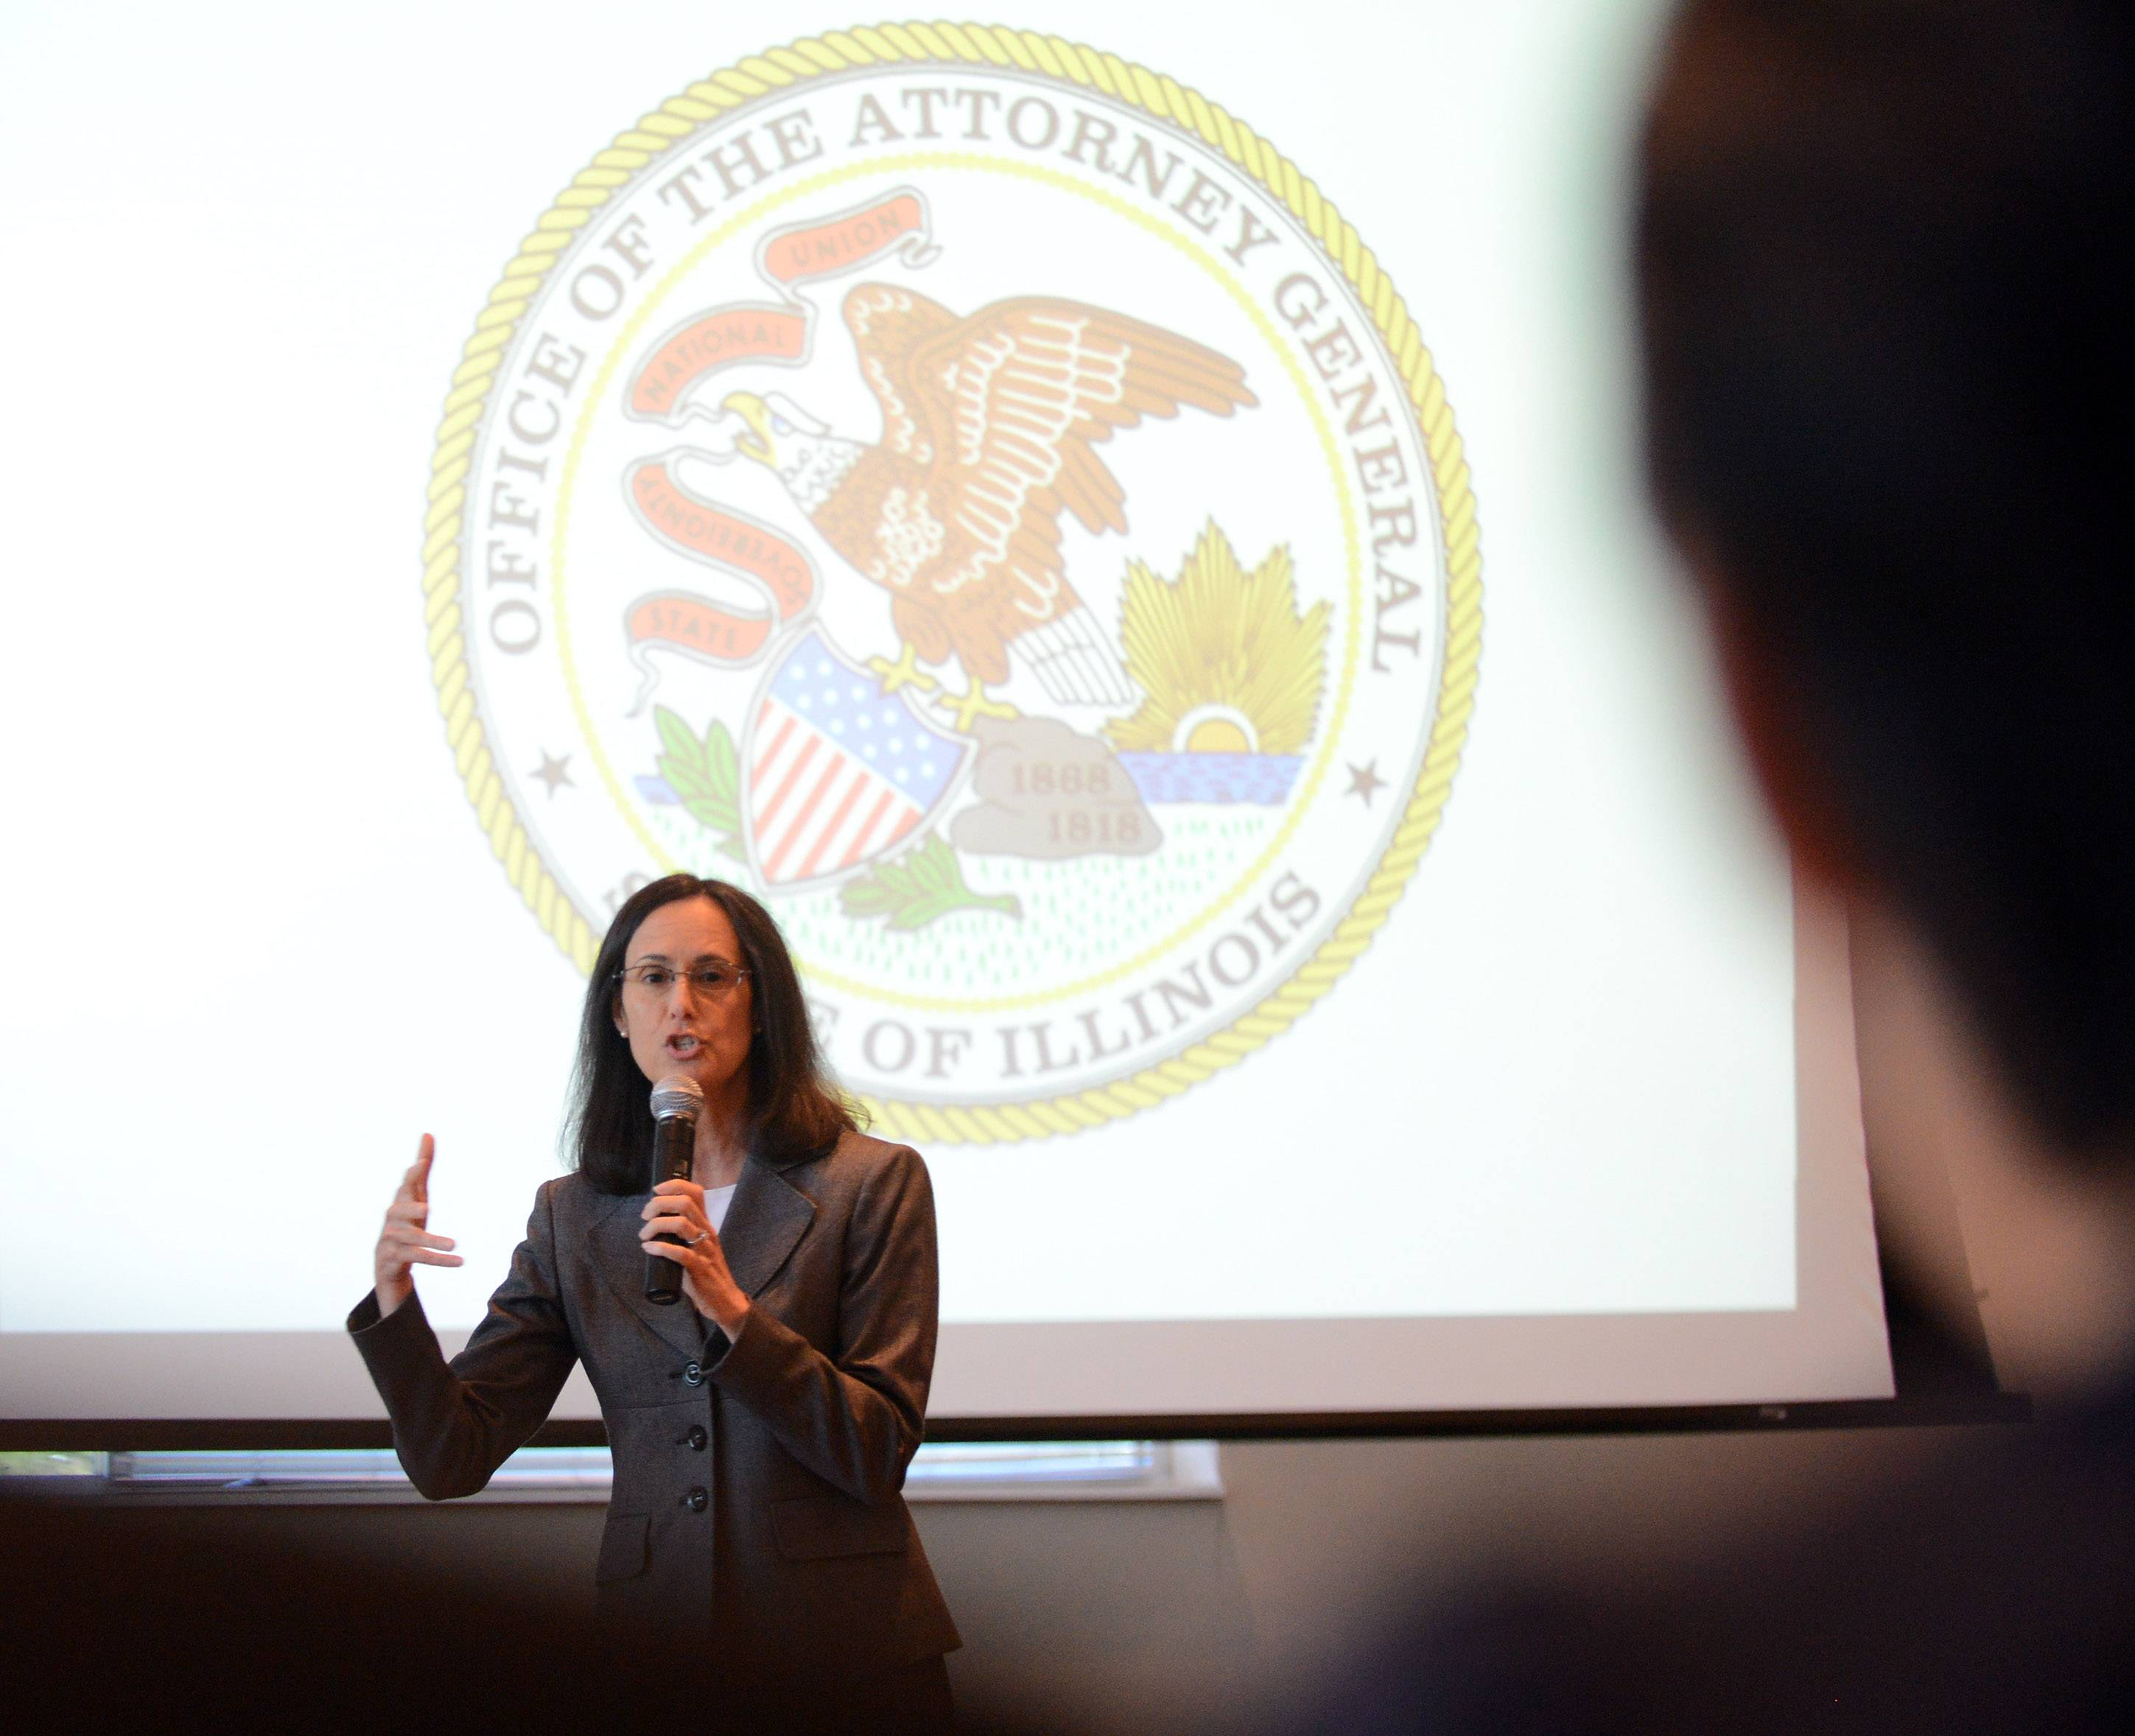 Illinois Attorney General Lisa Madigan speaks during a roundtable discussion in Elgin.